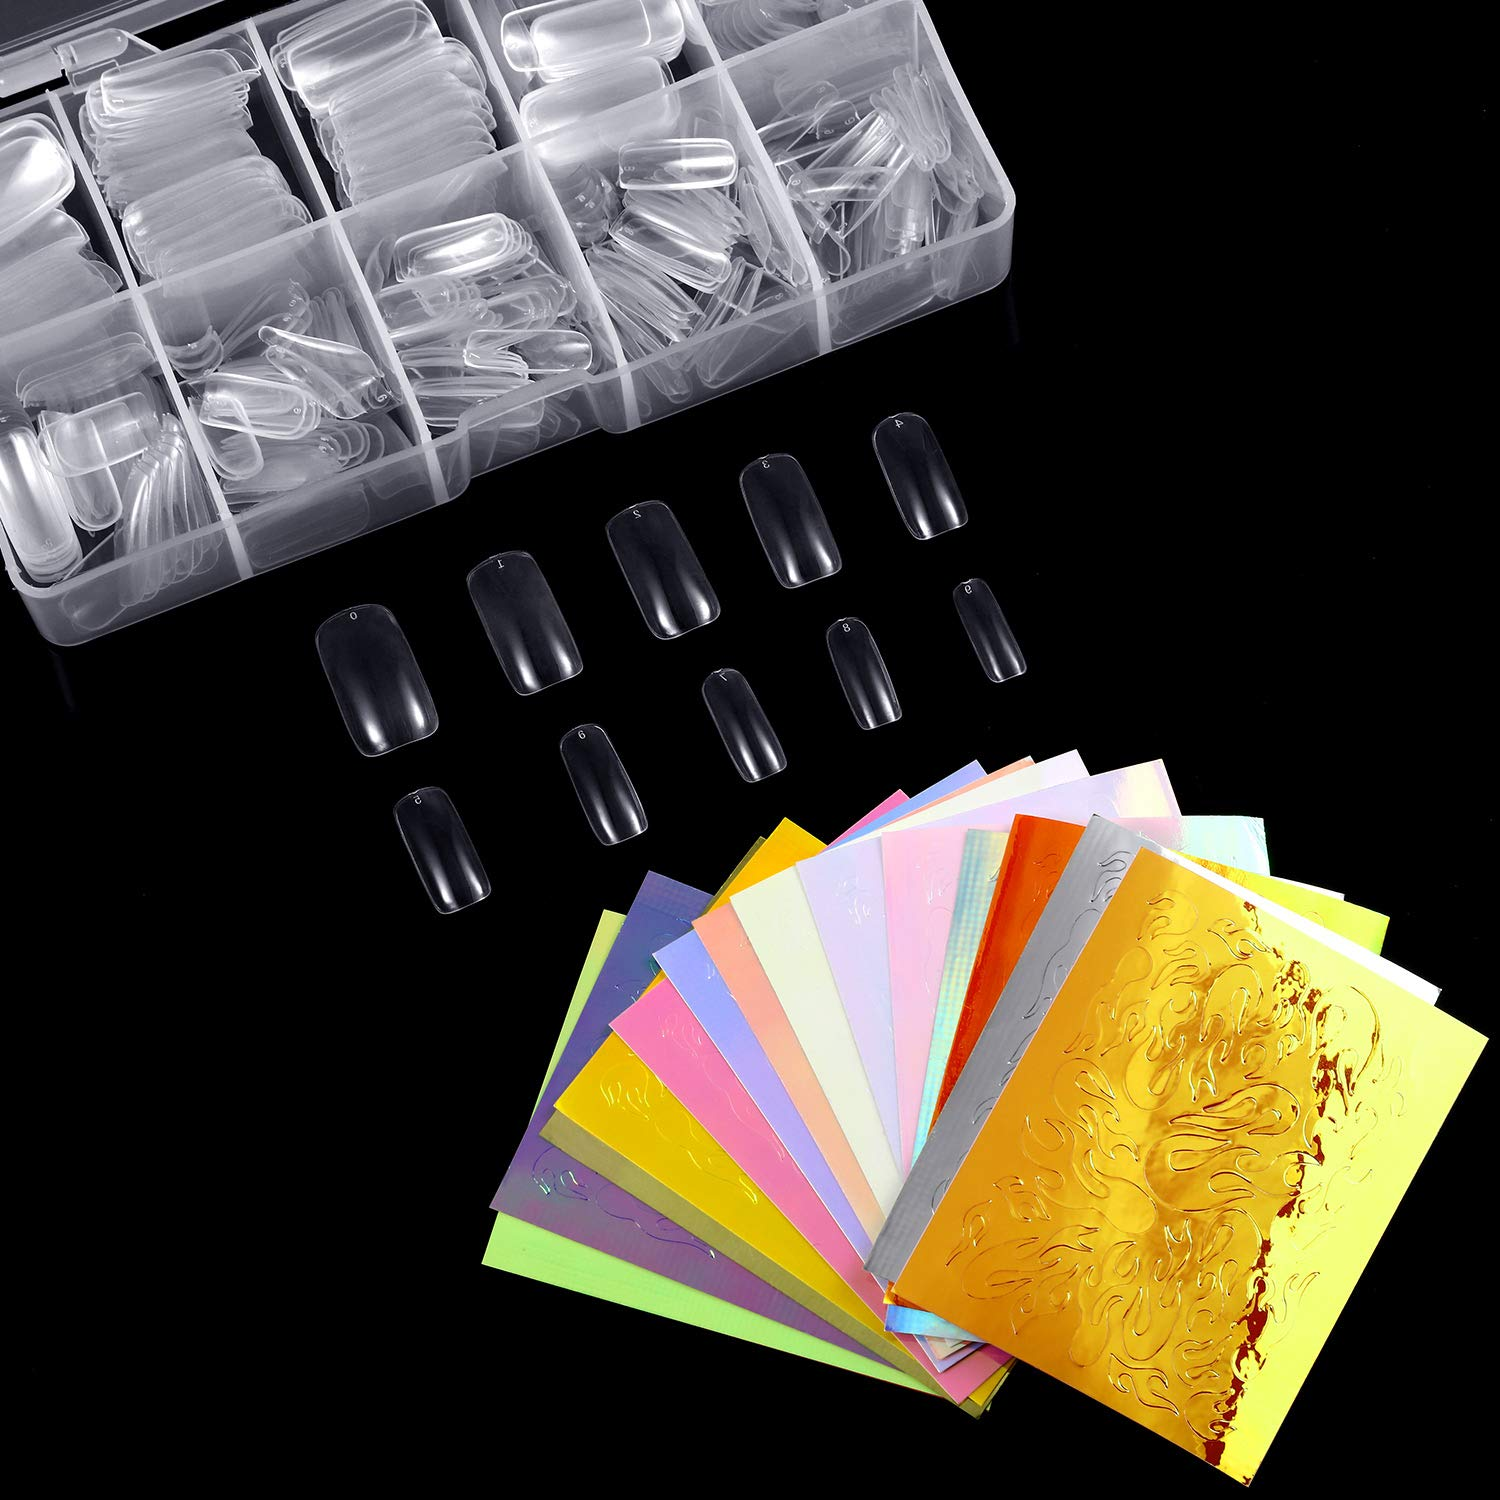 Blulu 500 Pieces Clear Acrylic Nail Tips 10 Sizes Fake Nails Half Cover with 16 Pieces Holographic Fire Nail Art Stickers Flame Reflections Tape Adhesive Sticker DIY Decoration Nail Decor Design by Blulu